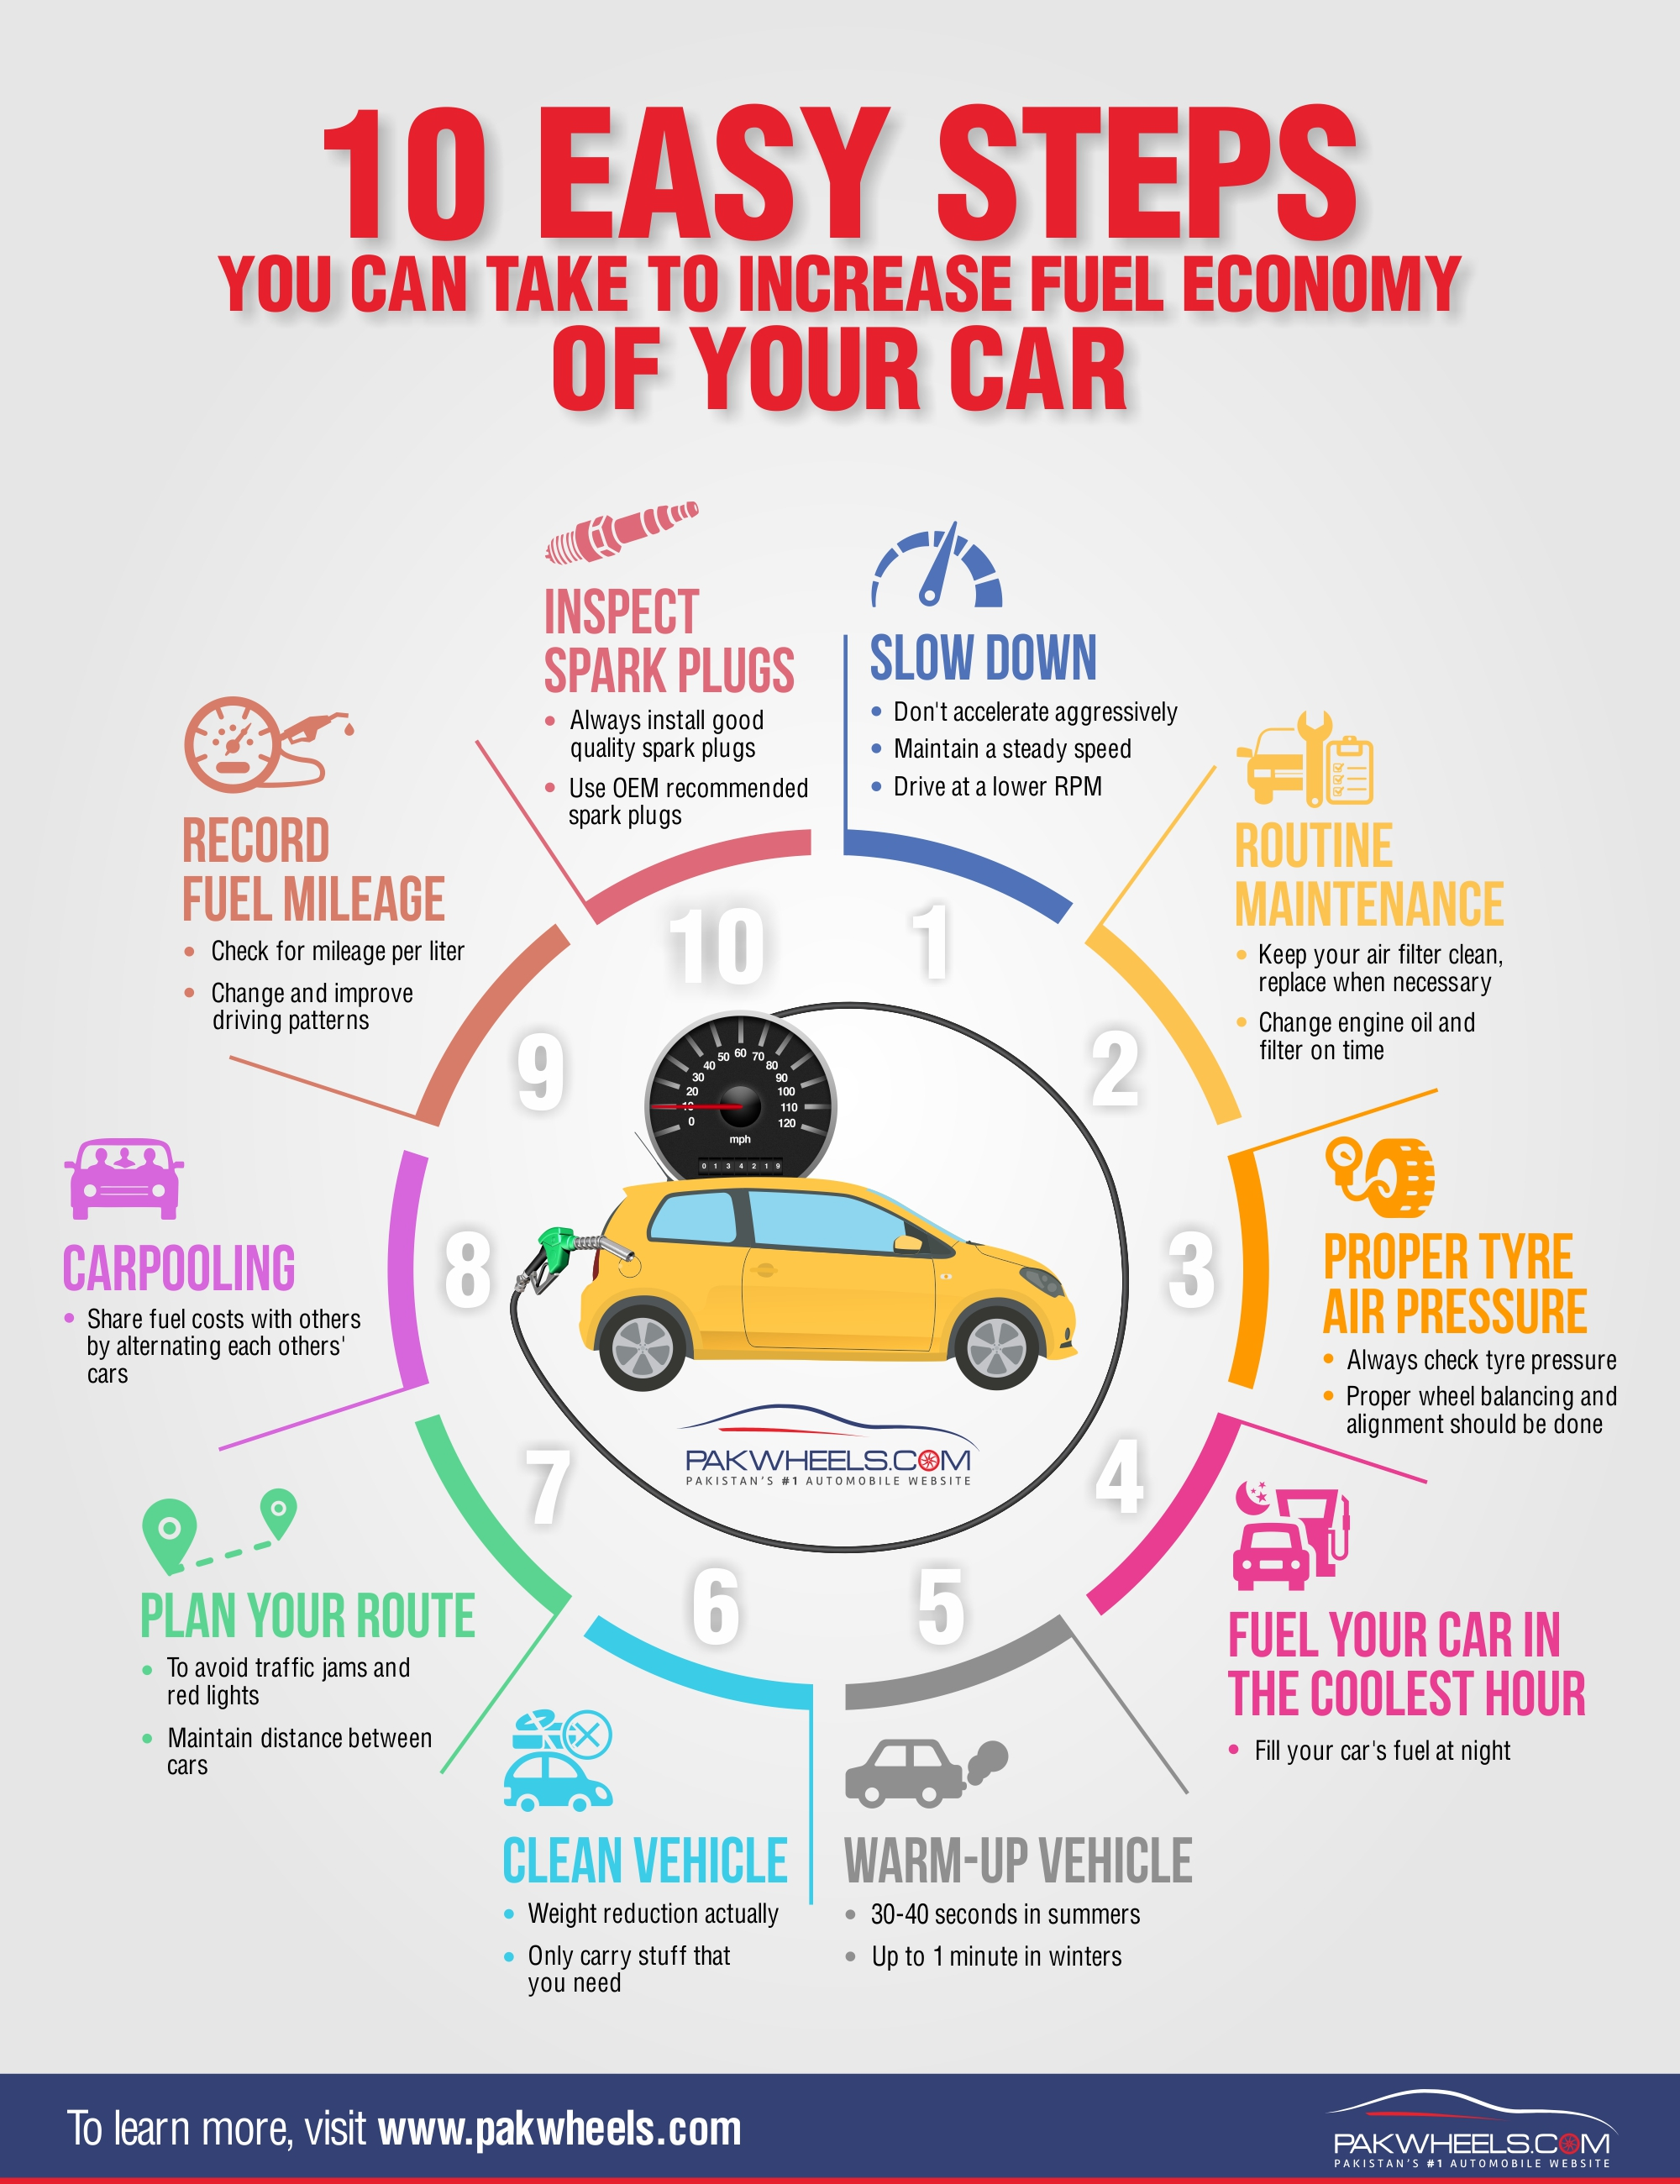 Pakwheels Infographic 10 Steps To Increase Fuel Economy